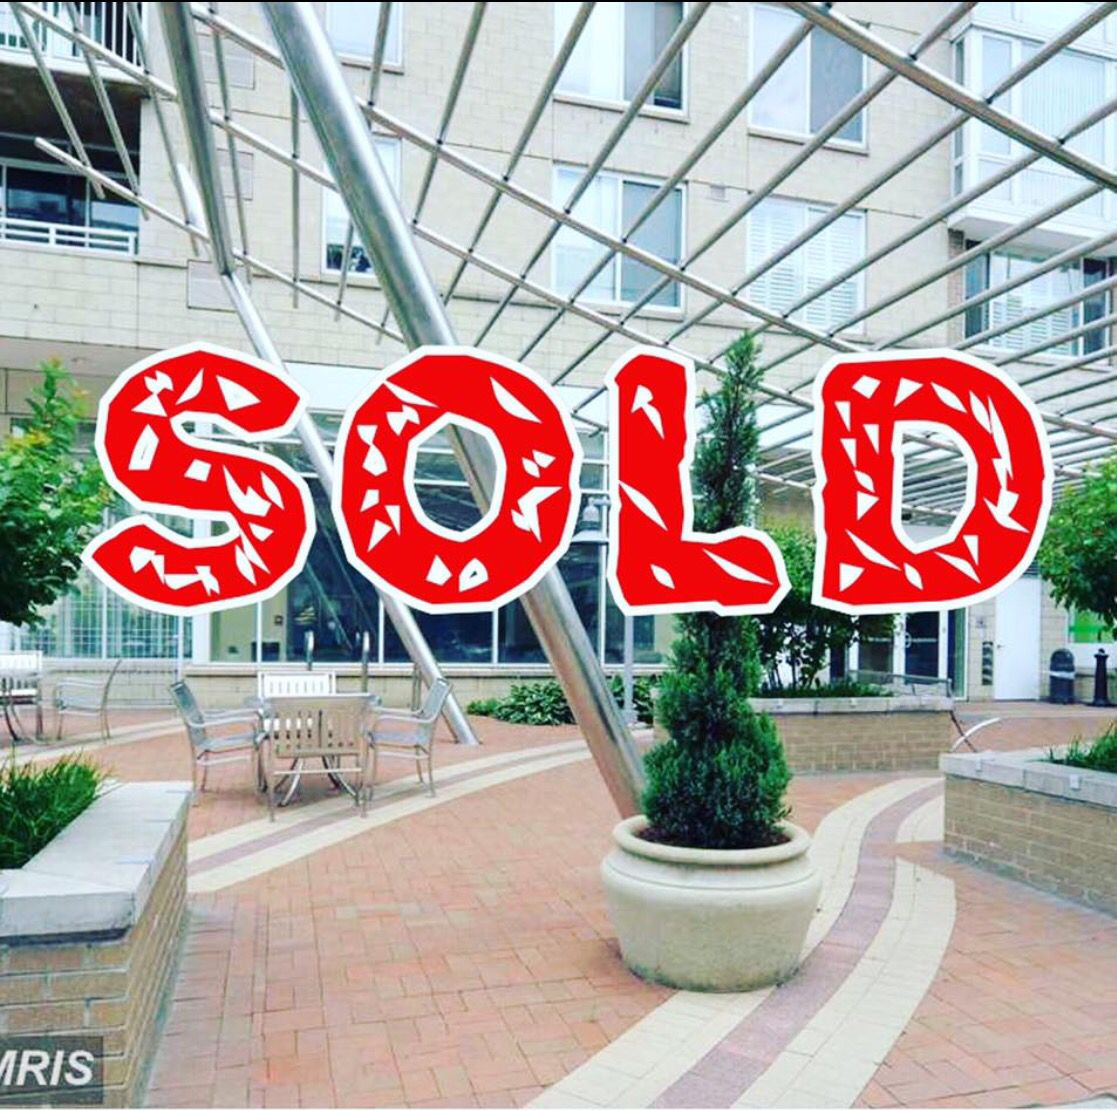 #SOLD #BarschRealty #BeyondExpectations #MontgomeryCounty #Downtown #SilverSpring #CrescentCondos #Luxury   #RealtorLife #RealtorStarShar 🏡🇺🇸🔑😄